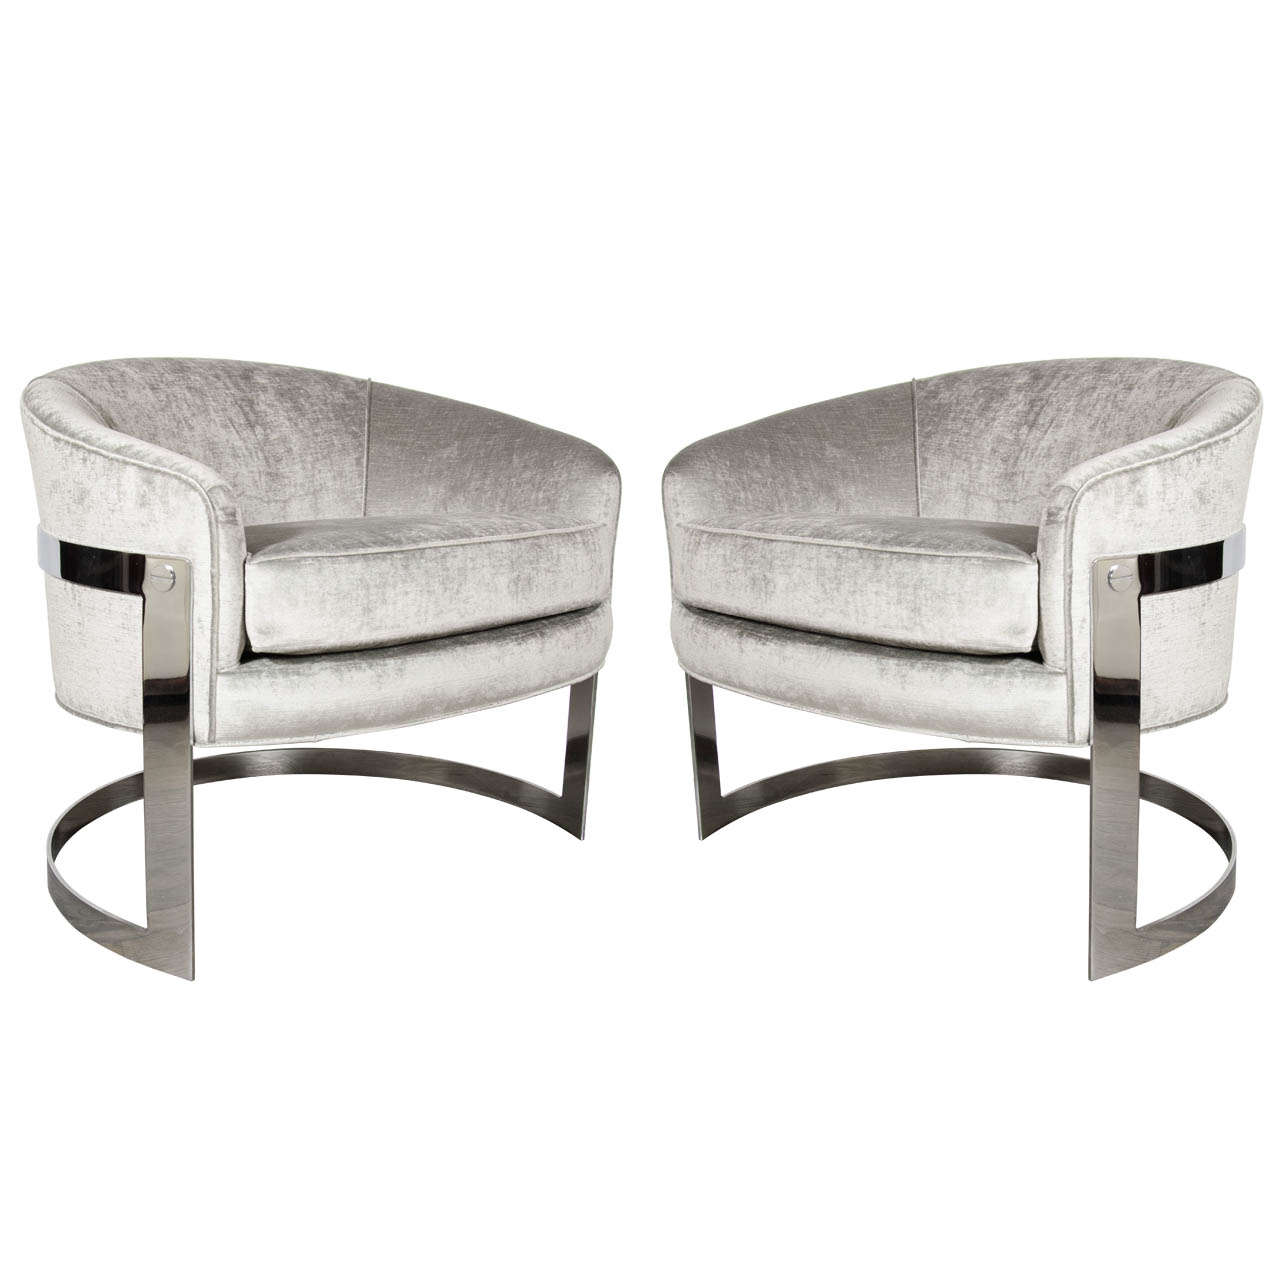 Charmant Modern Occasional Chairs